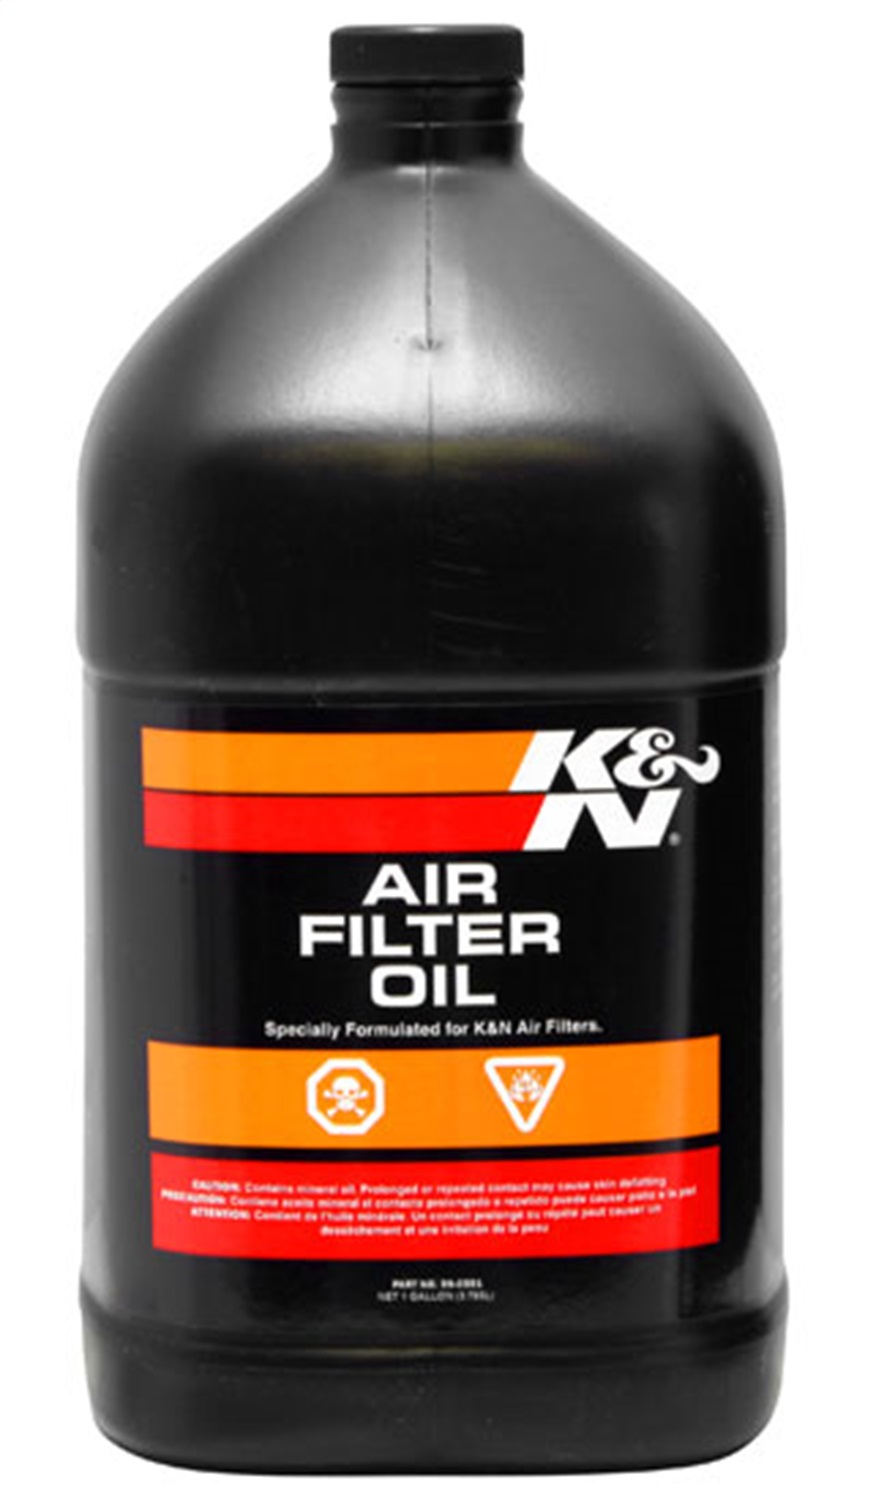 K&N Filters 99-0551 Filtercharger Oil 99-0551